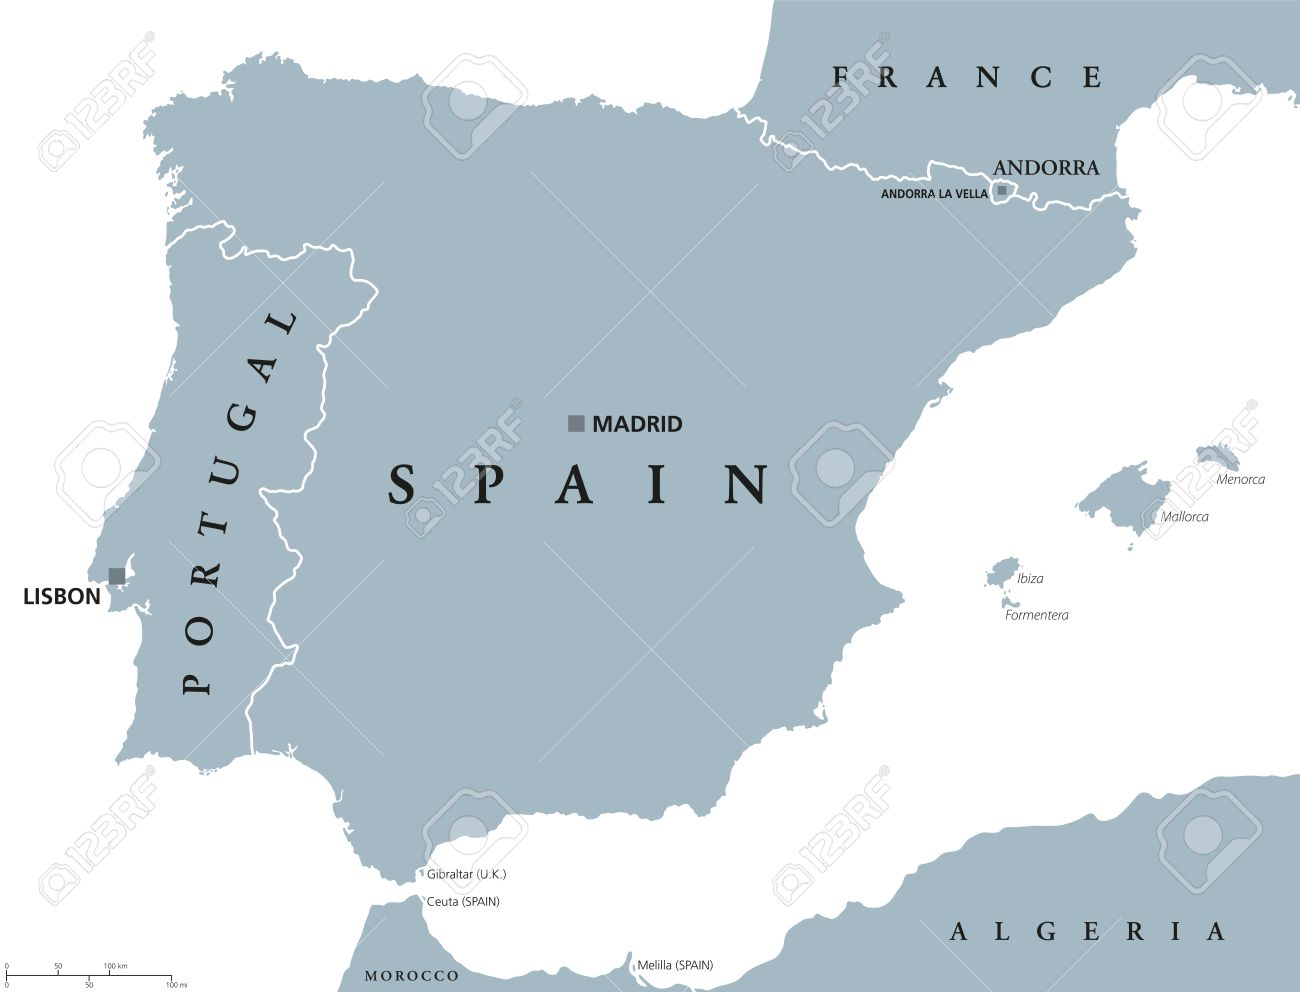 Lisbon Spain Map.Portugal And Spain Political Map With Capitals Lisbon And Madrid